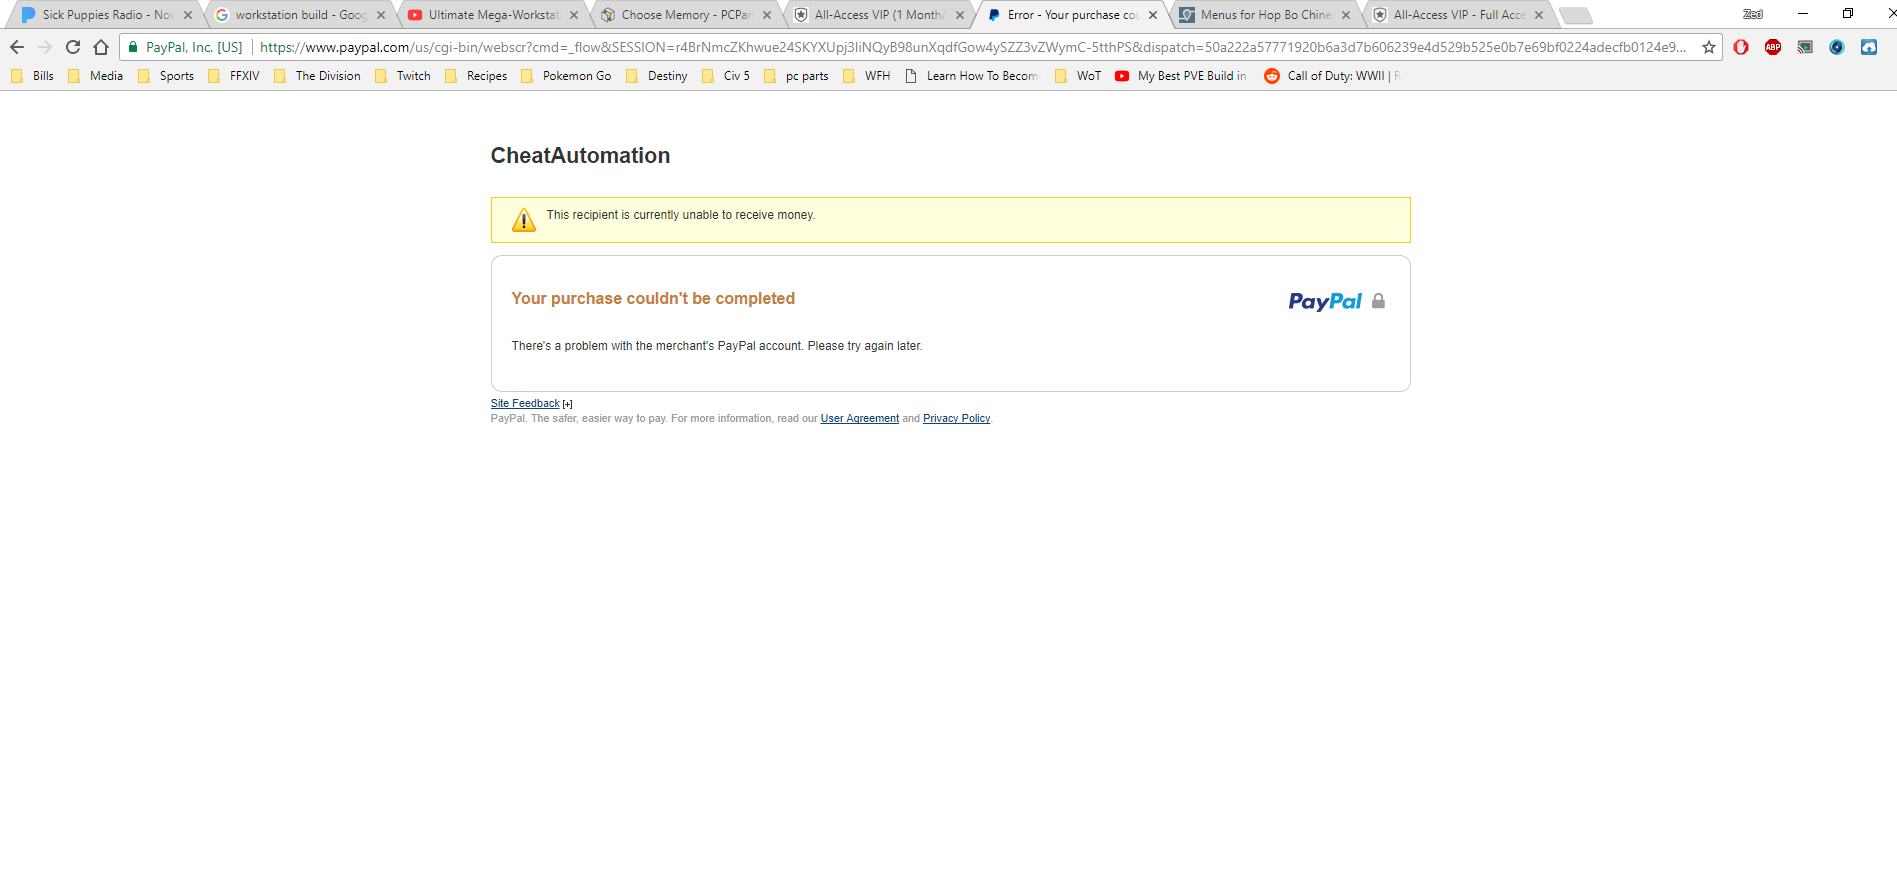 CheatAutomation Paypal problem - Presales Questions - CheatAutomation